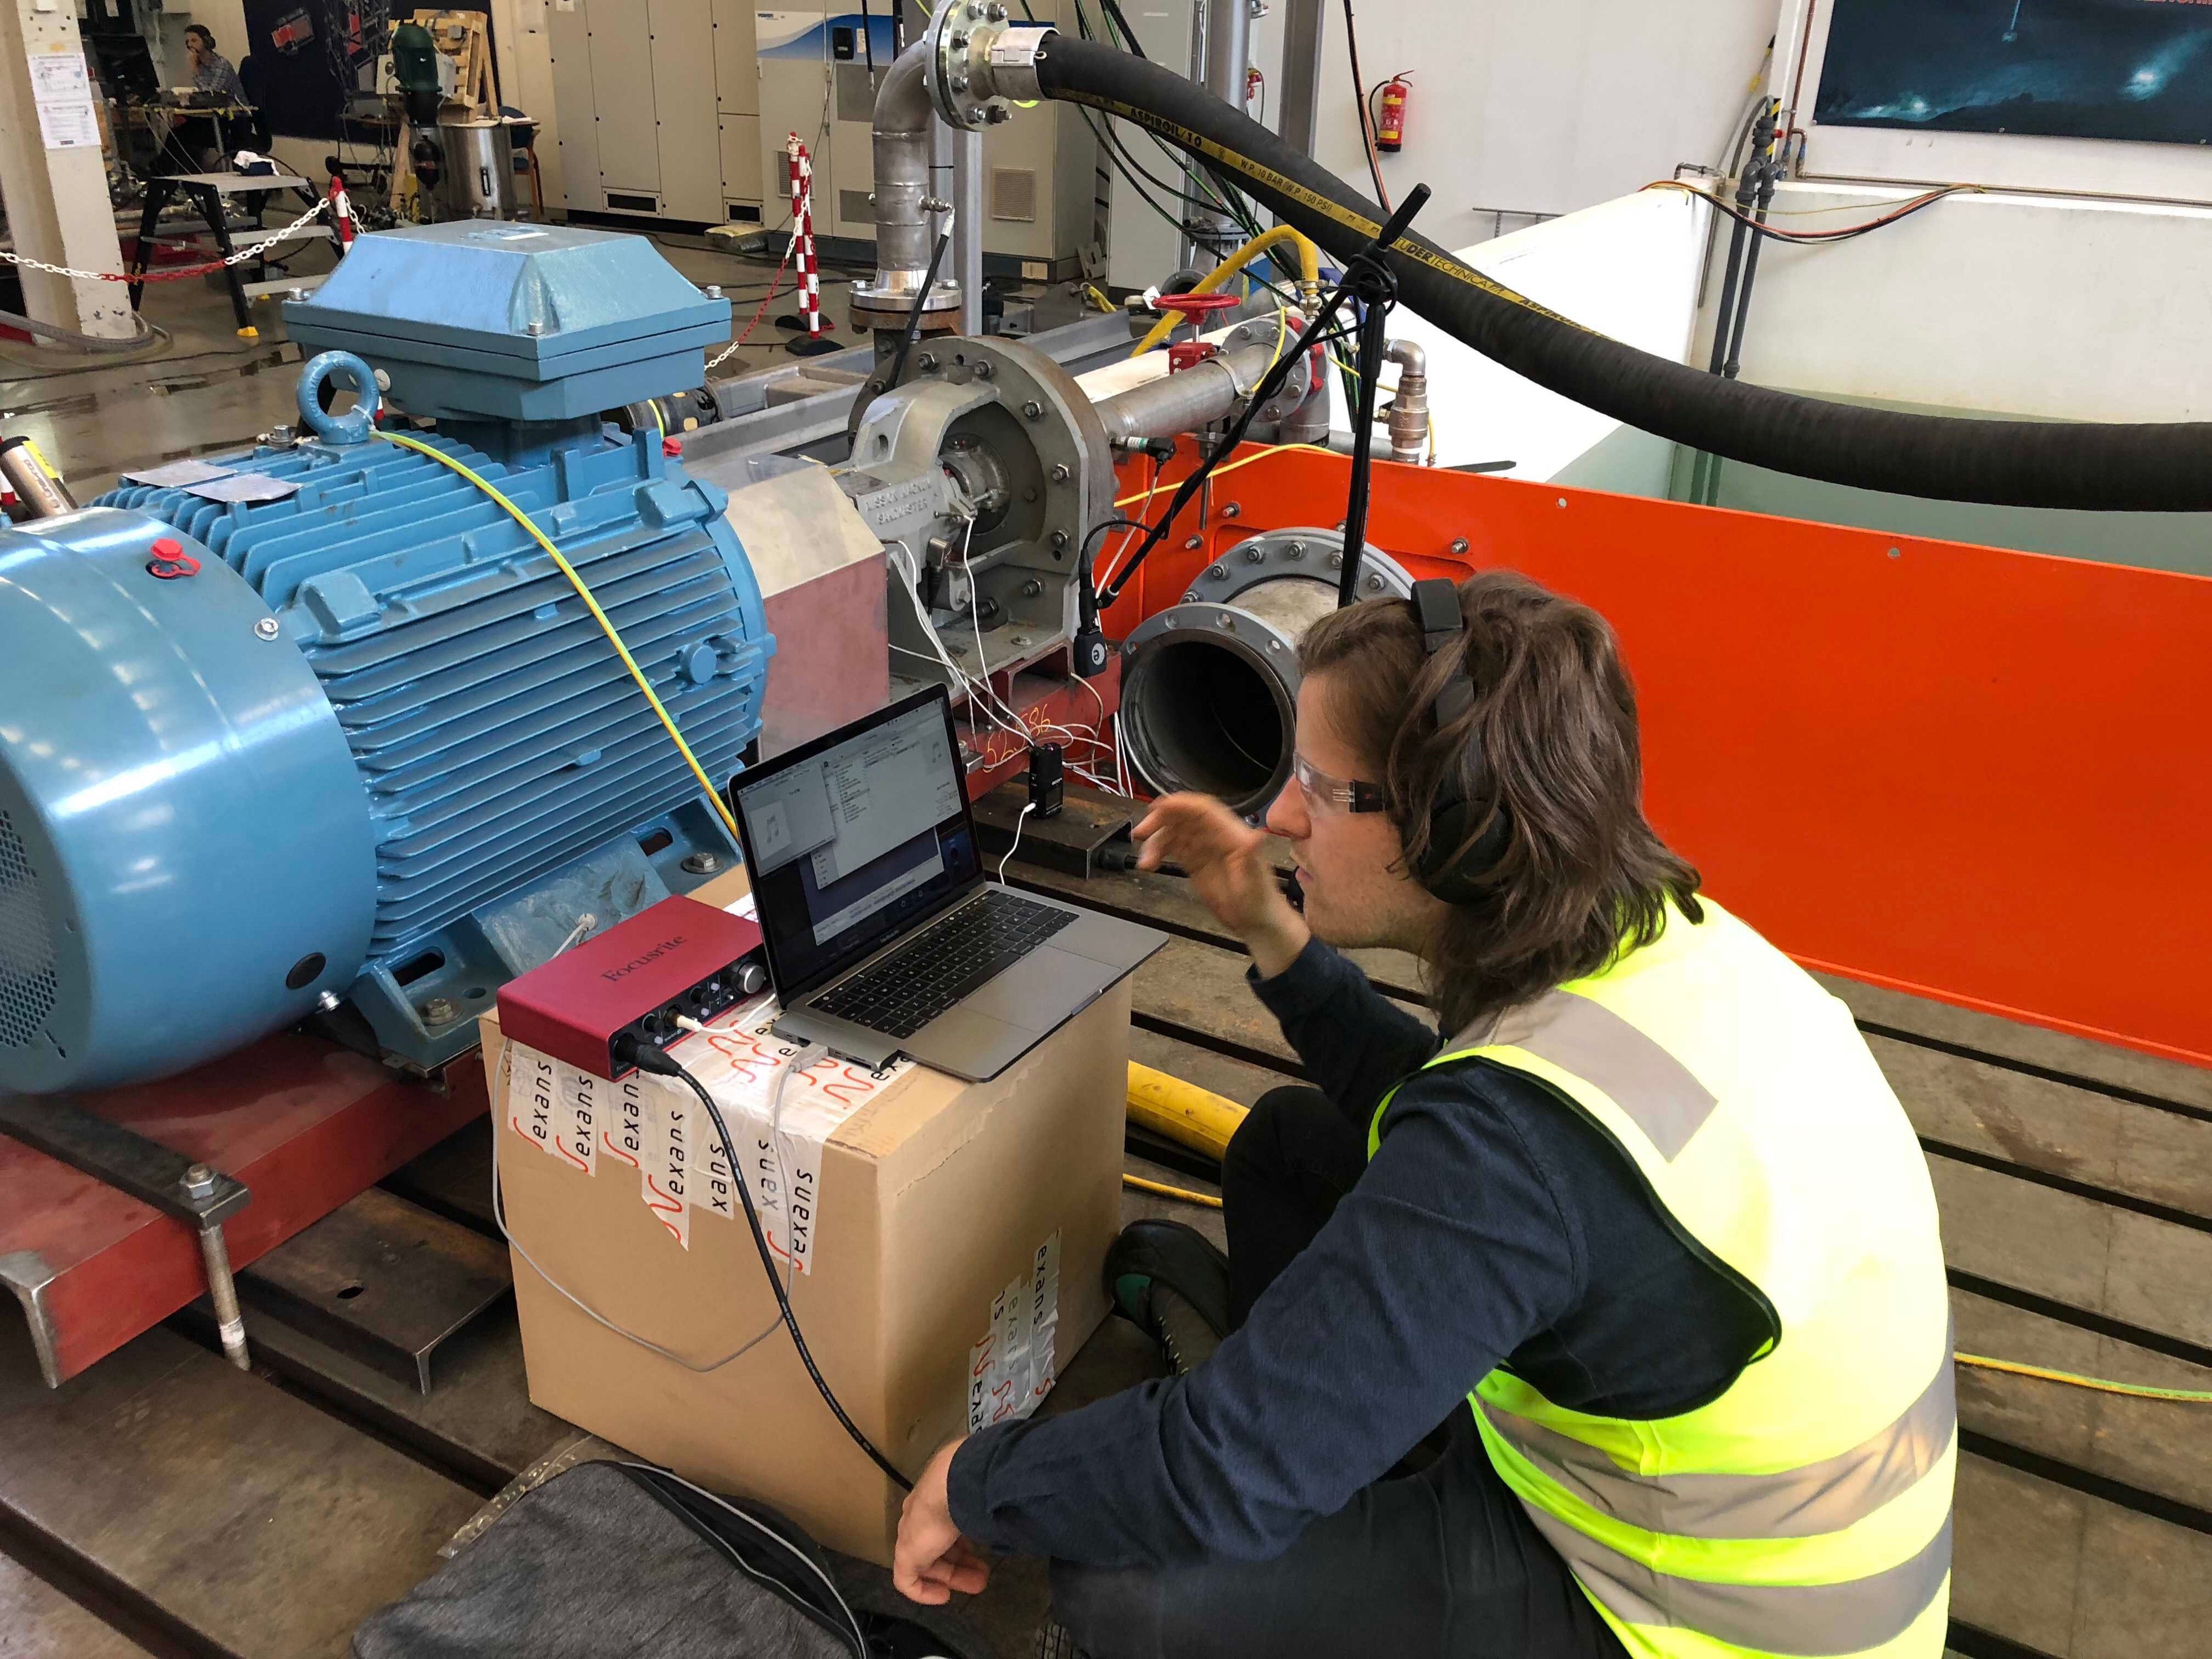 Man sitting in front of his microphone equipped laptop, in front of a large pump, doing experimental analysis of audio data